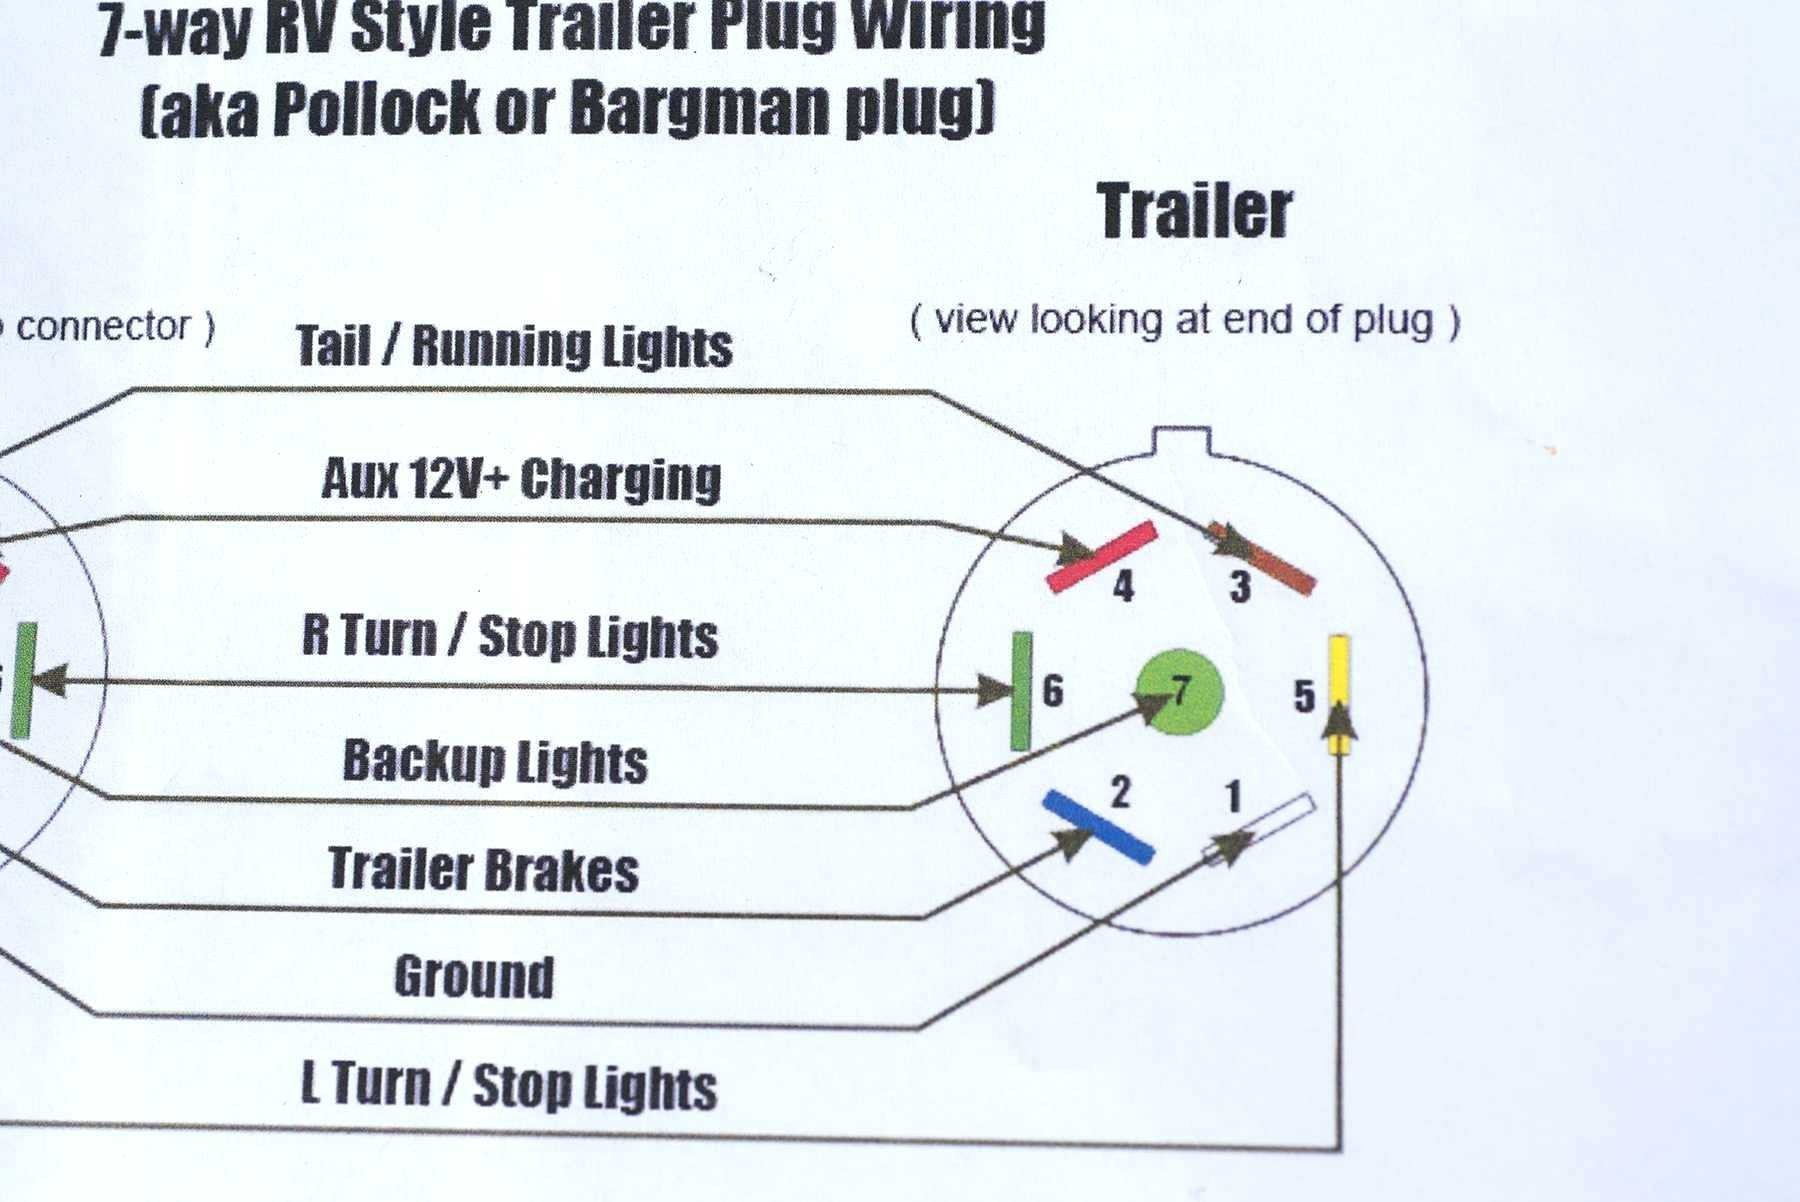 Hoppy Trailer Wiring Gm   back registre Wiring Diagram   back ...